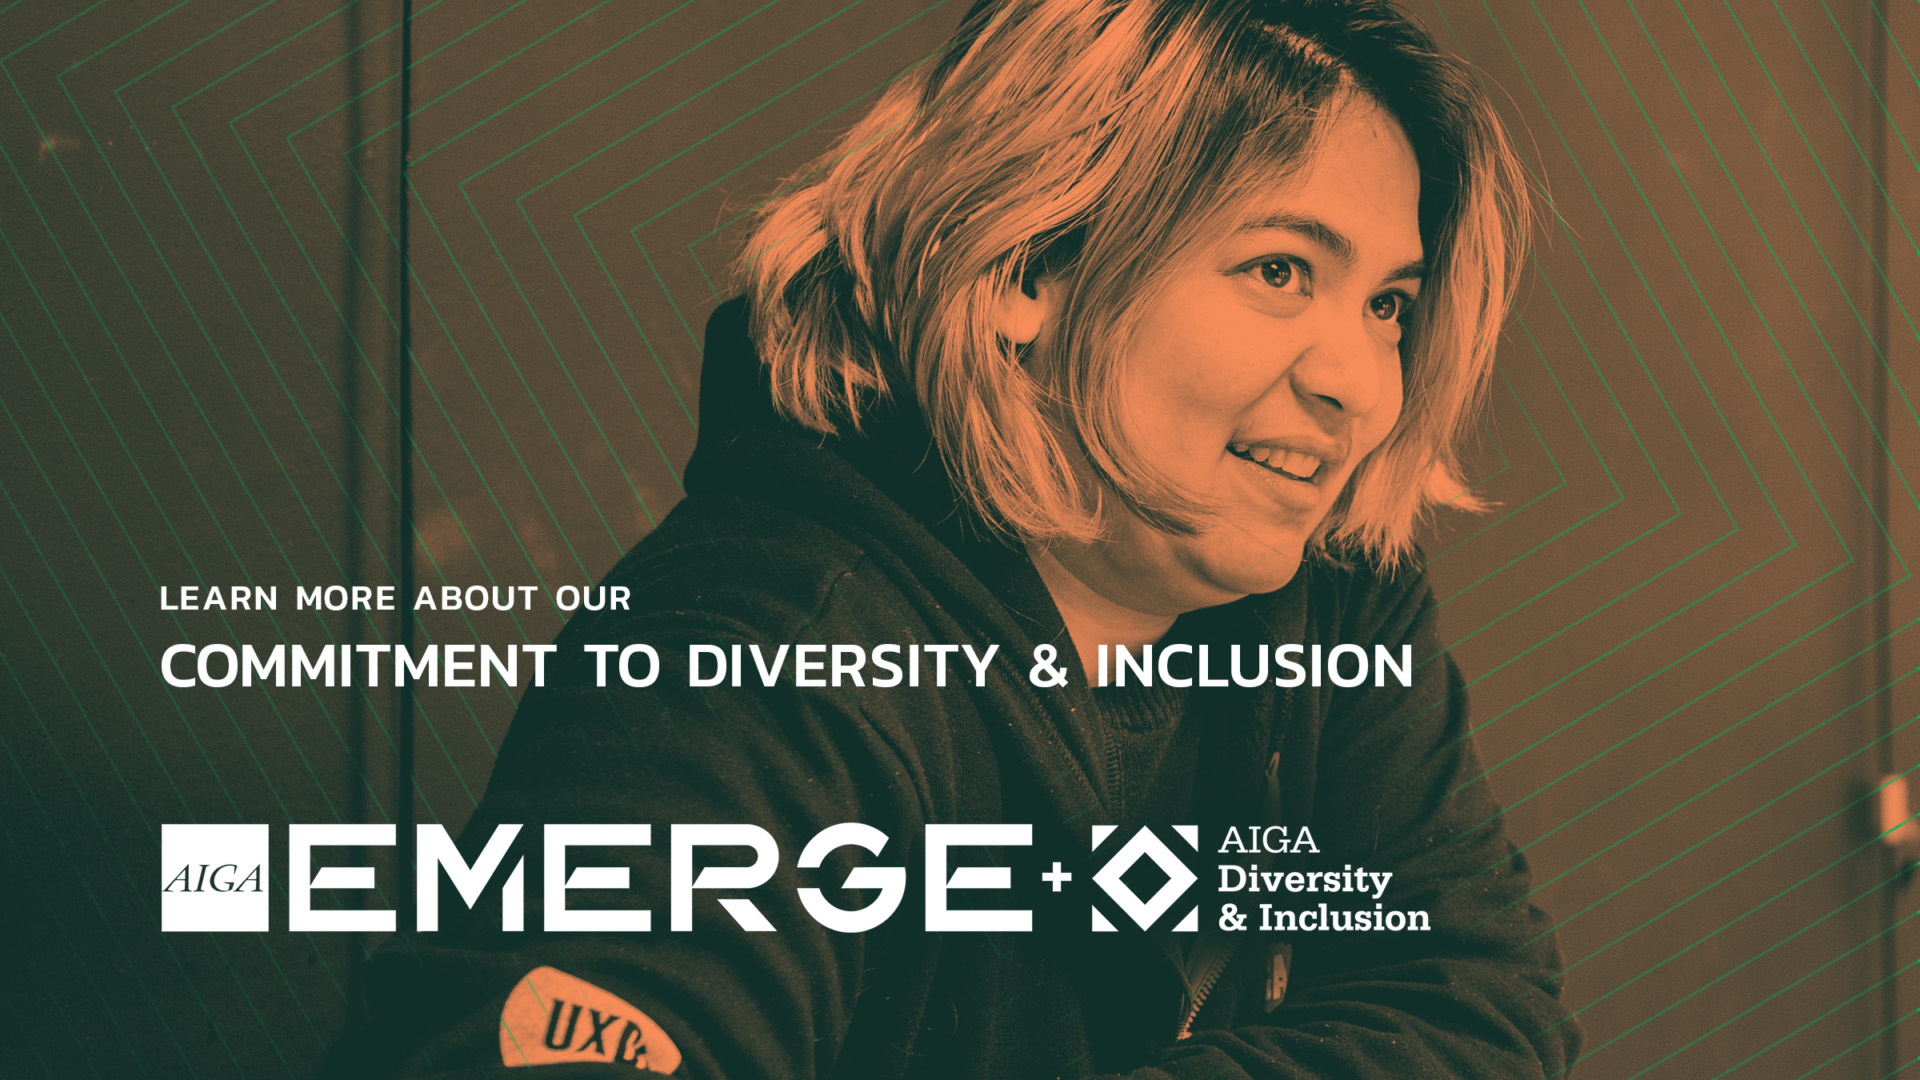 AIGA EMERGE + AIGA Diversity & Inclusion Task Force